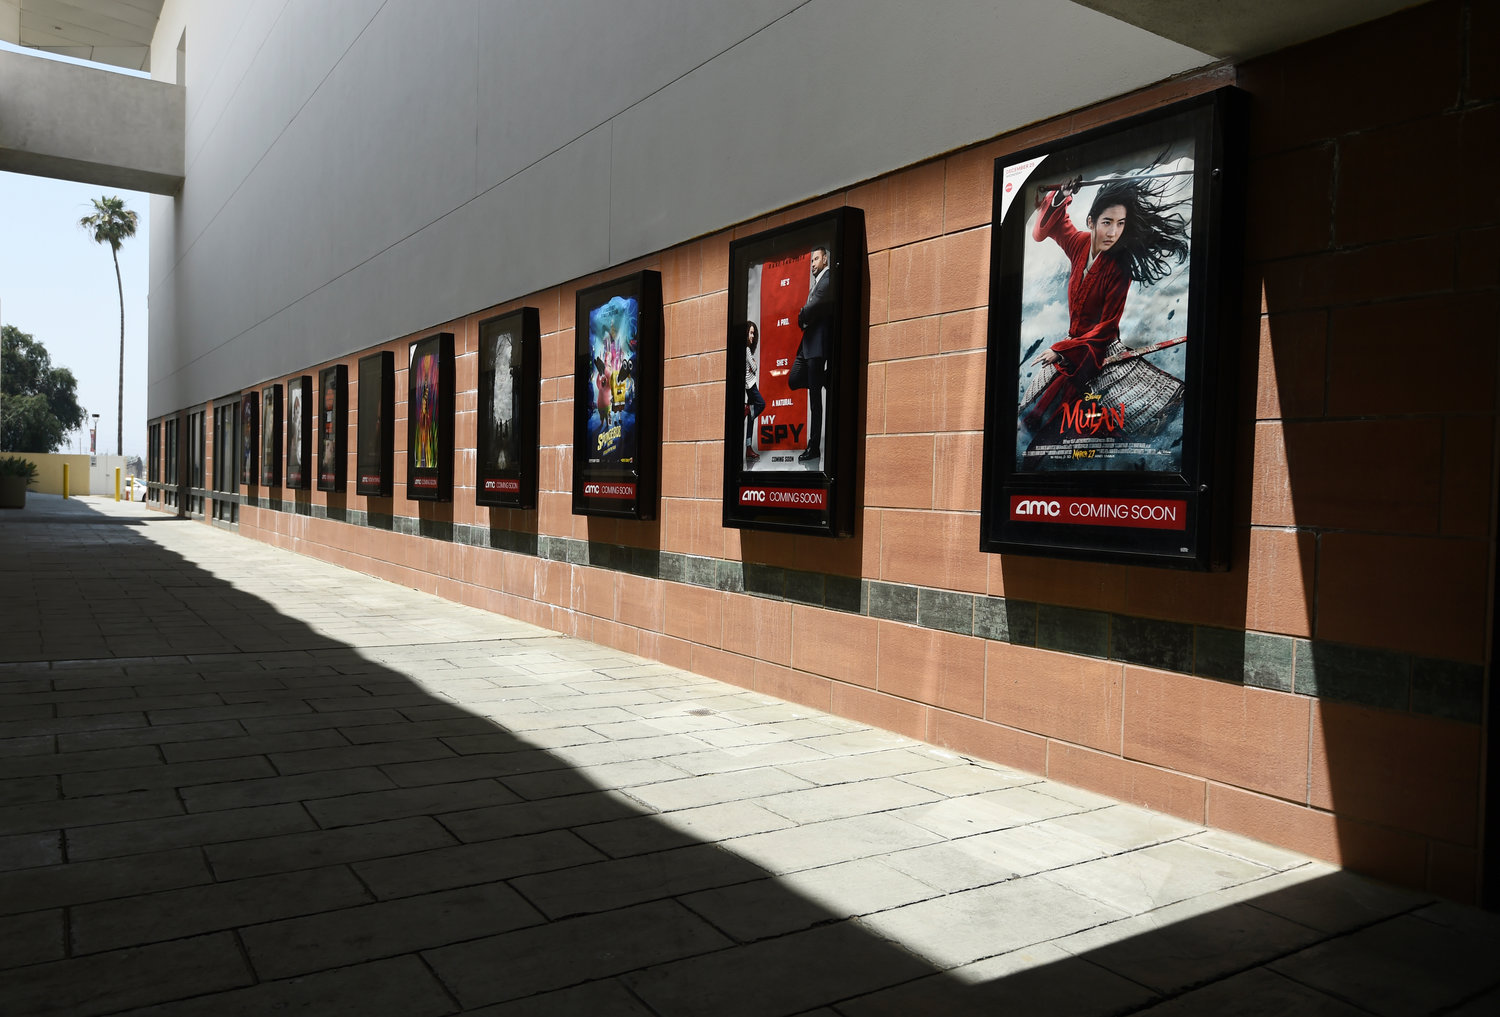 FILE - Posters for upcoming movies are displayed in an empty corridor at the currently closed AMC Burbank Town Center 8 movie theaters complex on April 29, 2020, in Burbank, Calif. After several false starts, the film industry is hoping to bring new releases back into movie theaters in late August. But for blockbusters, it may mean rethinking opening weekend and returning to a more gradual rollout through international and U.S. territories. Gone for now are the days of massive global openings. And theater owners say if they don't get new films soon, they may not make it to 2021. (AP Photo/Chris Pizzello, File)